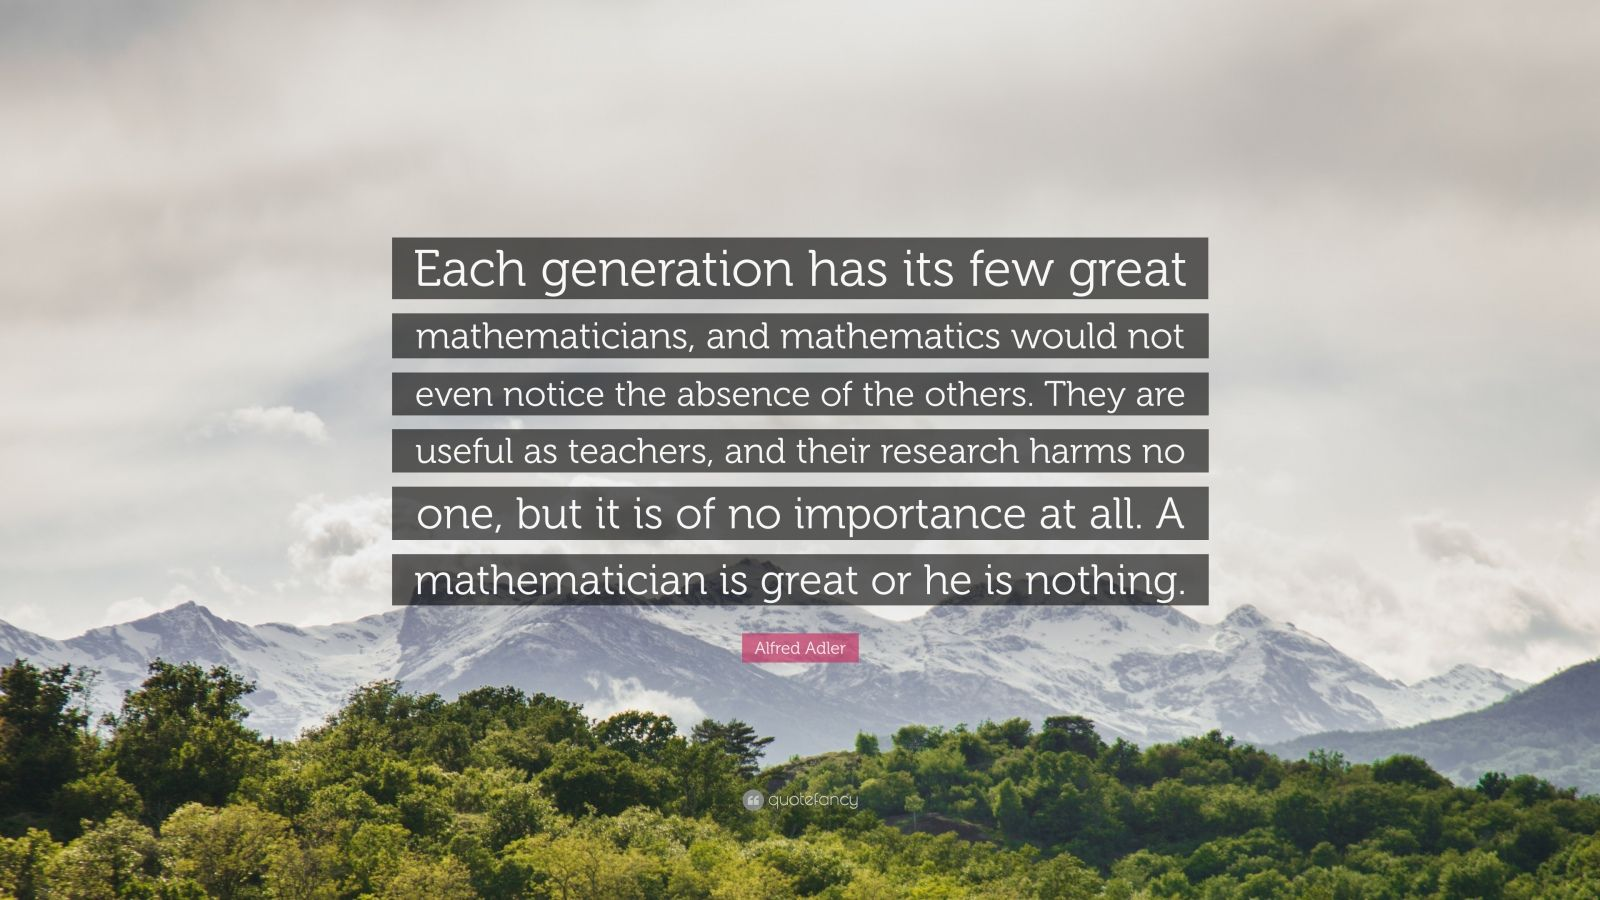 """Alfred Adler Quote: """"Each generation has its few great mathematicians, and mathematics would not even notice the absence of the others. They are useful as teachers, and their research harms no one, but it is of no importance at all. A mathematician is great or he is nothing."""""""